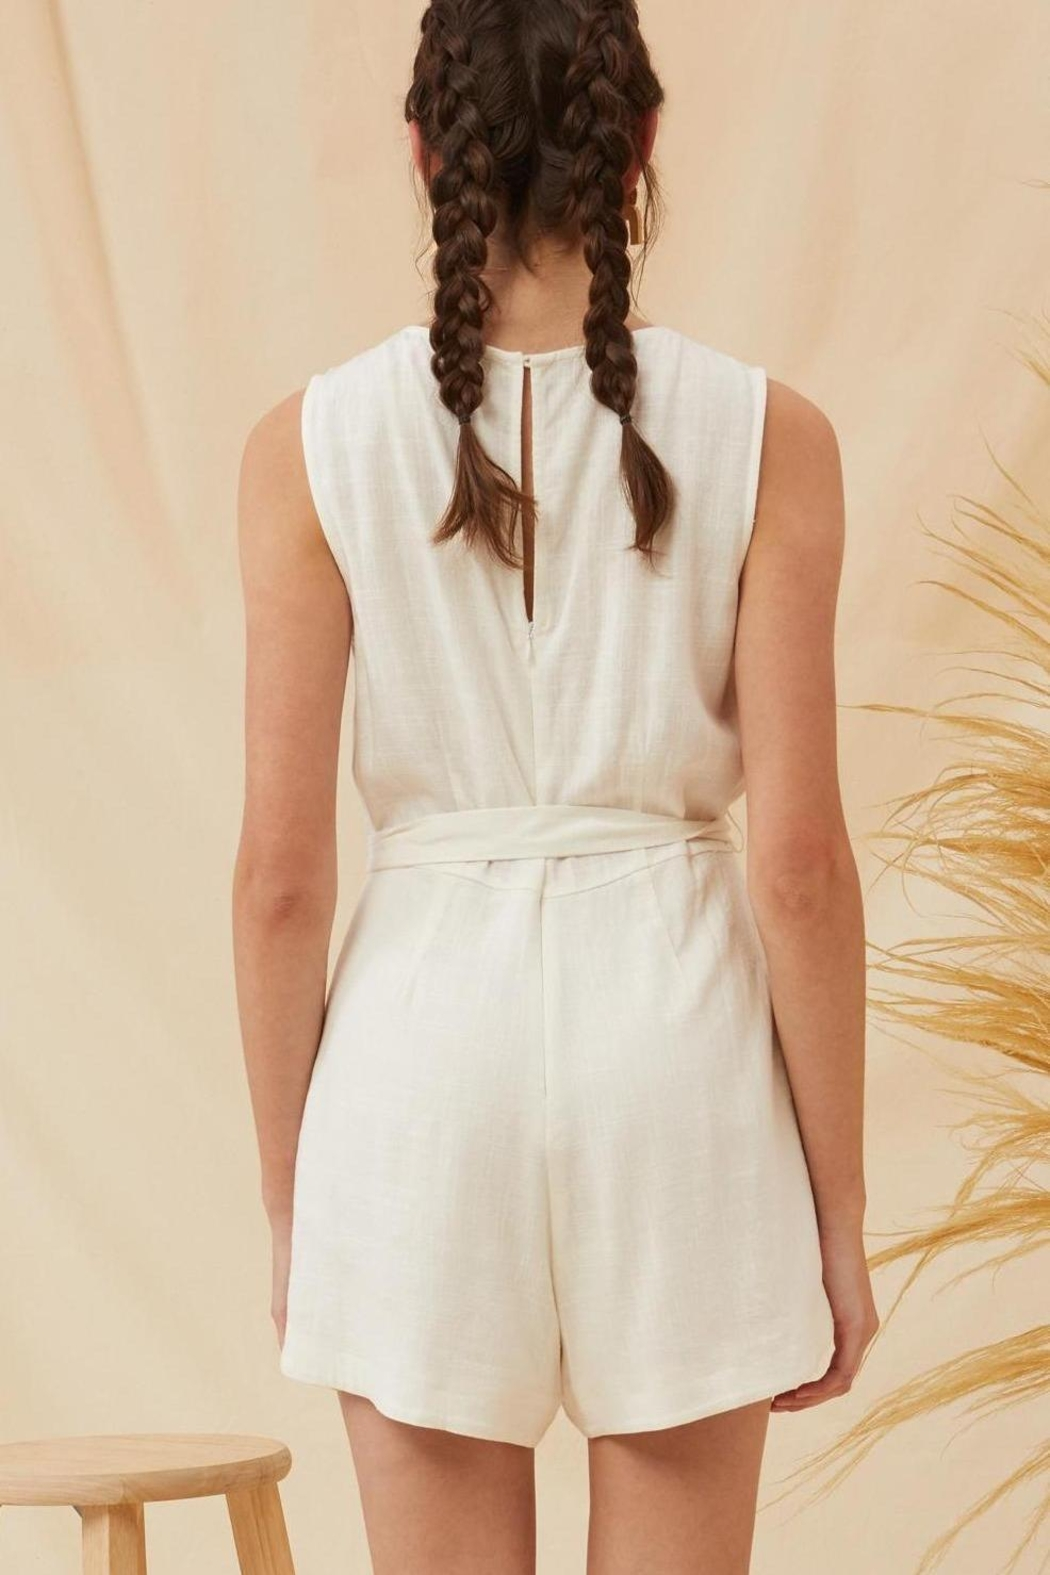 Lush Lorraine Linen Chic Ivory Tie Front Romper - Front Full Image